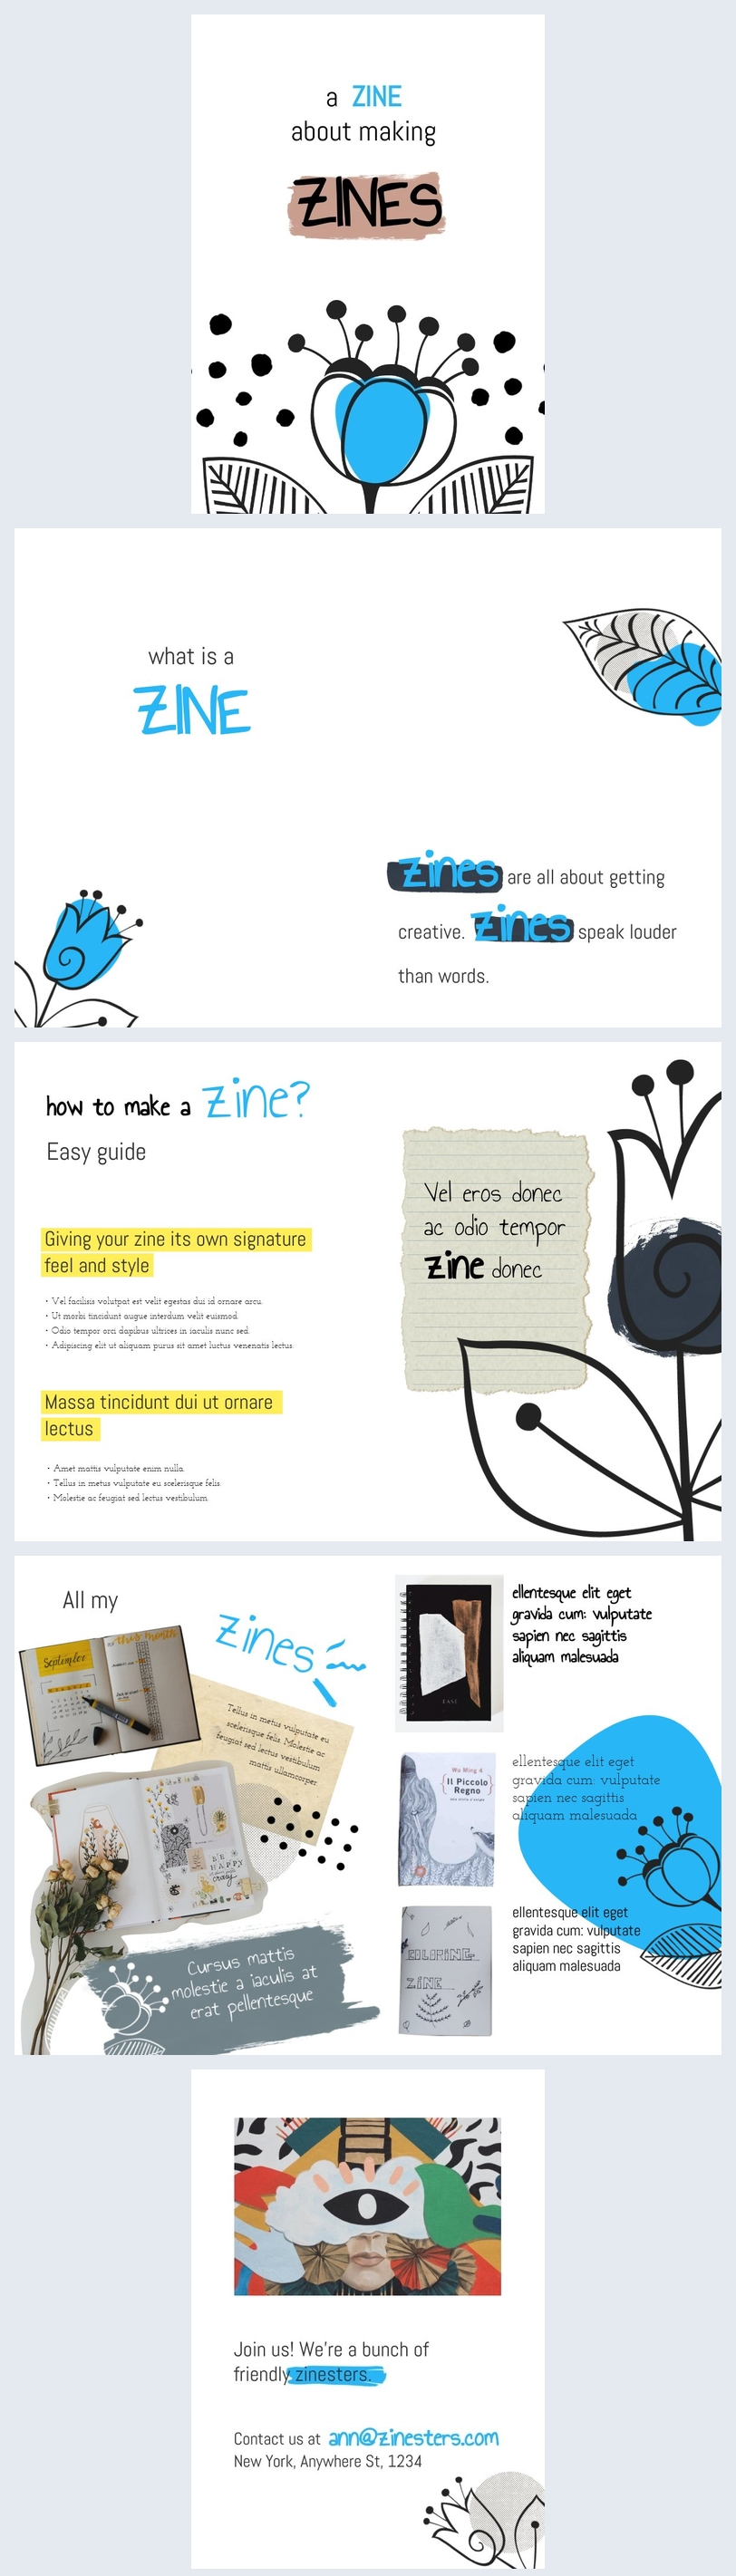 How to Make a Zine Idea